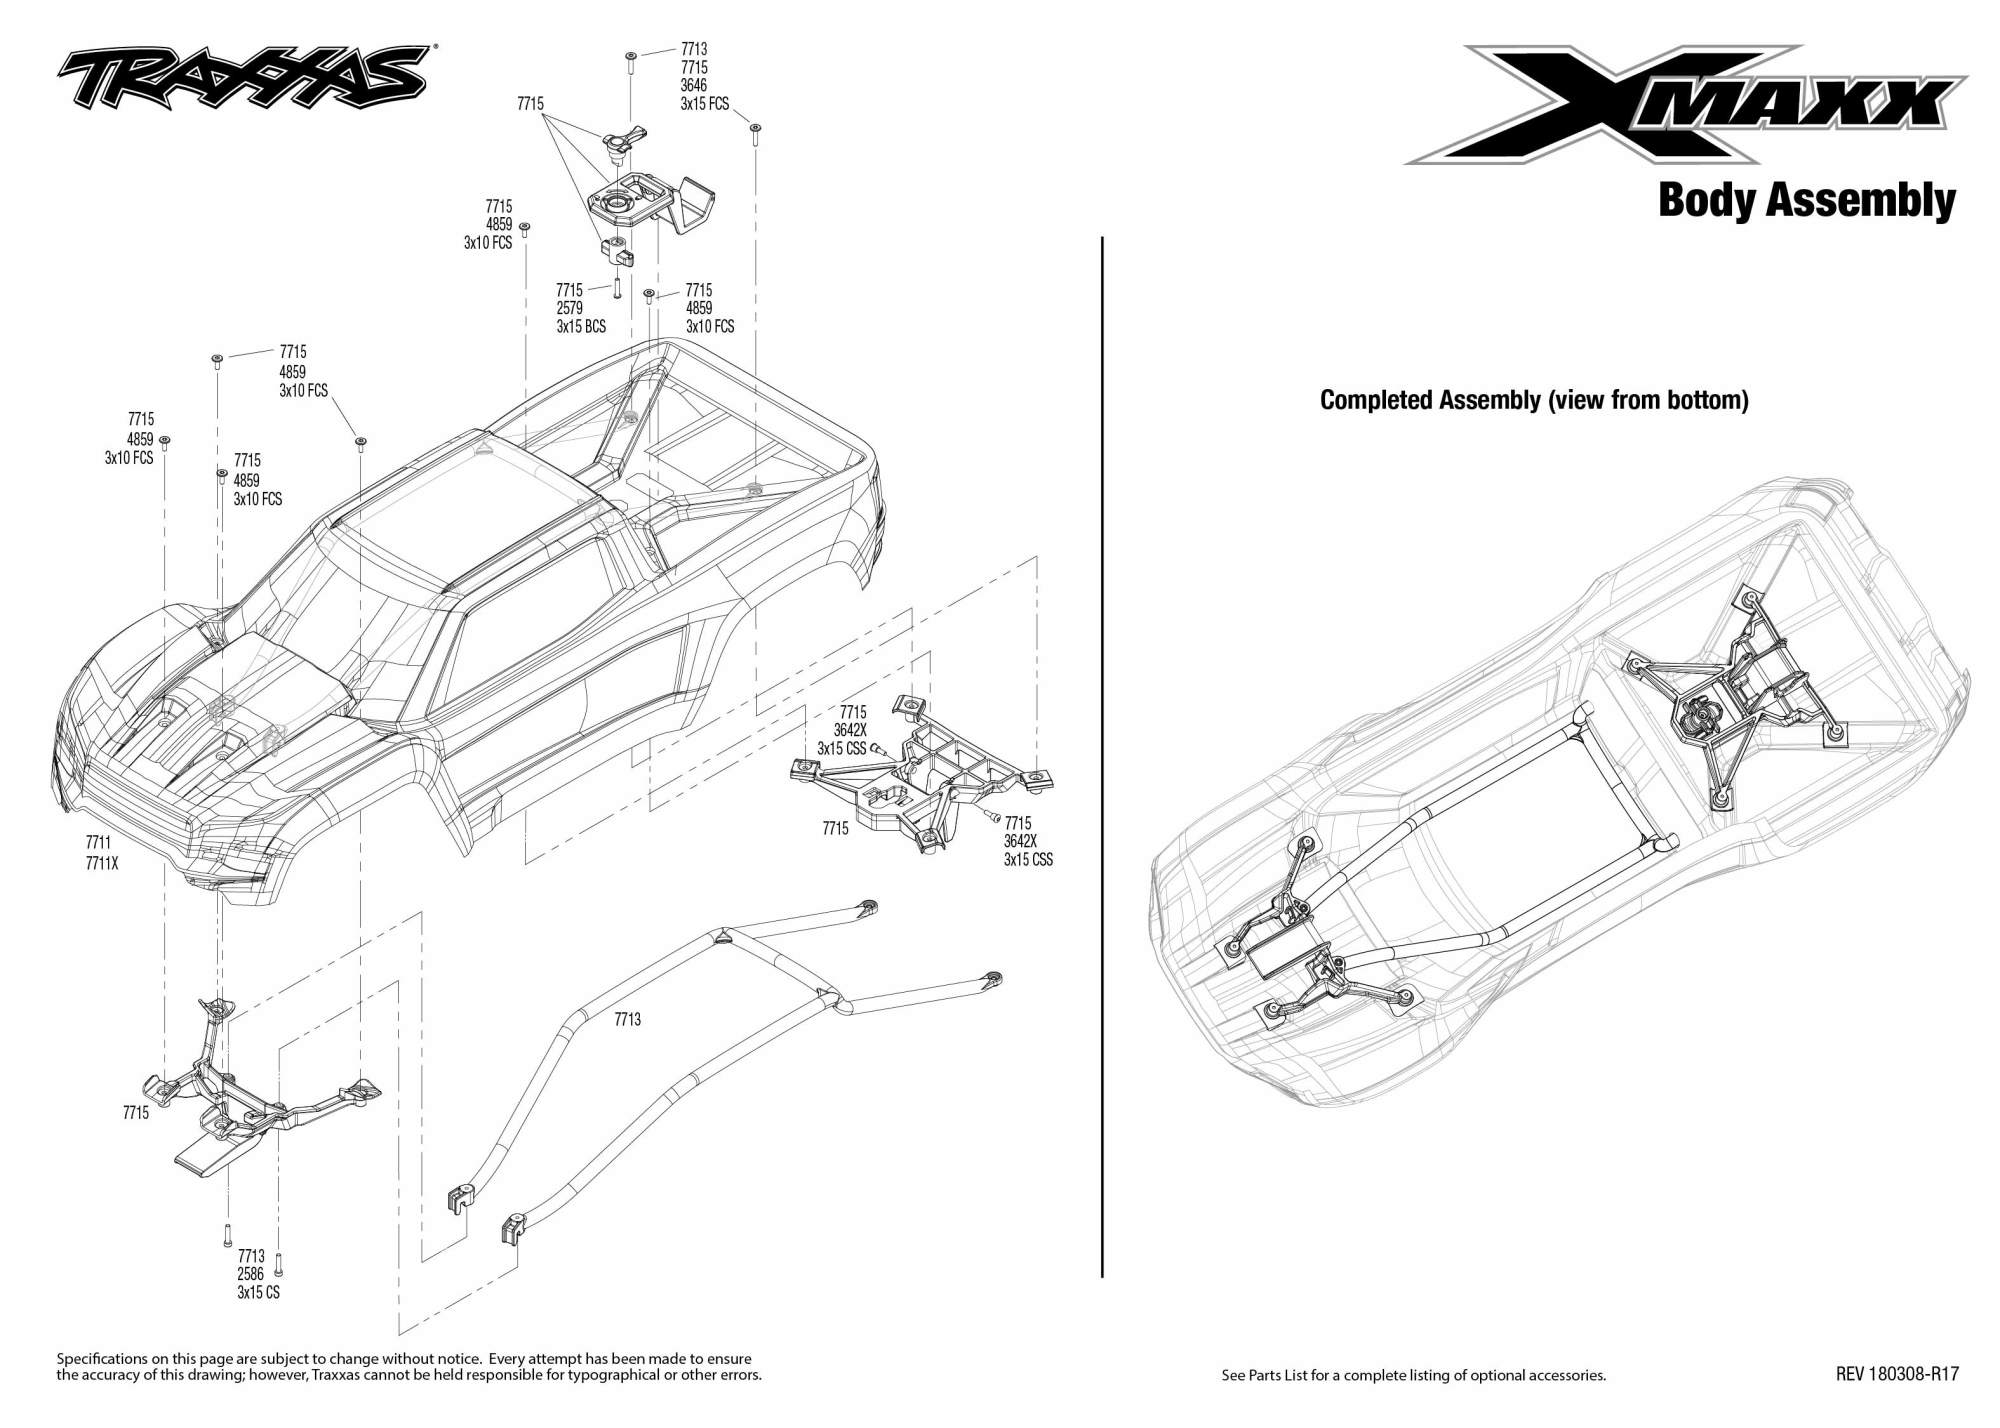 hight resolution of x maxx 77076 4 body assembly exploded view traxxas traxxas hawk x maxx traxxas diagram